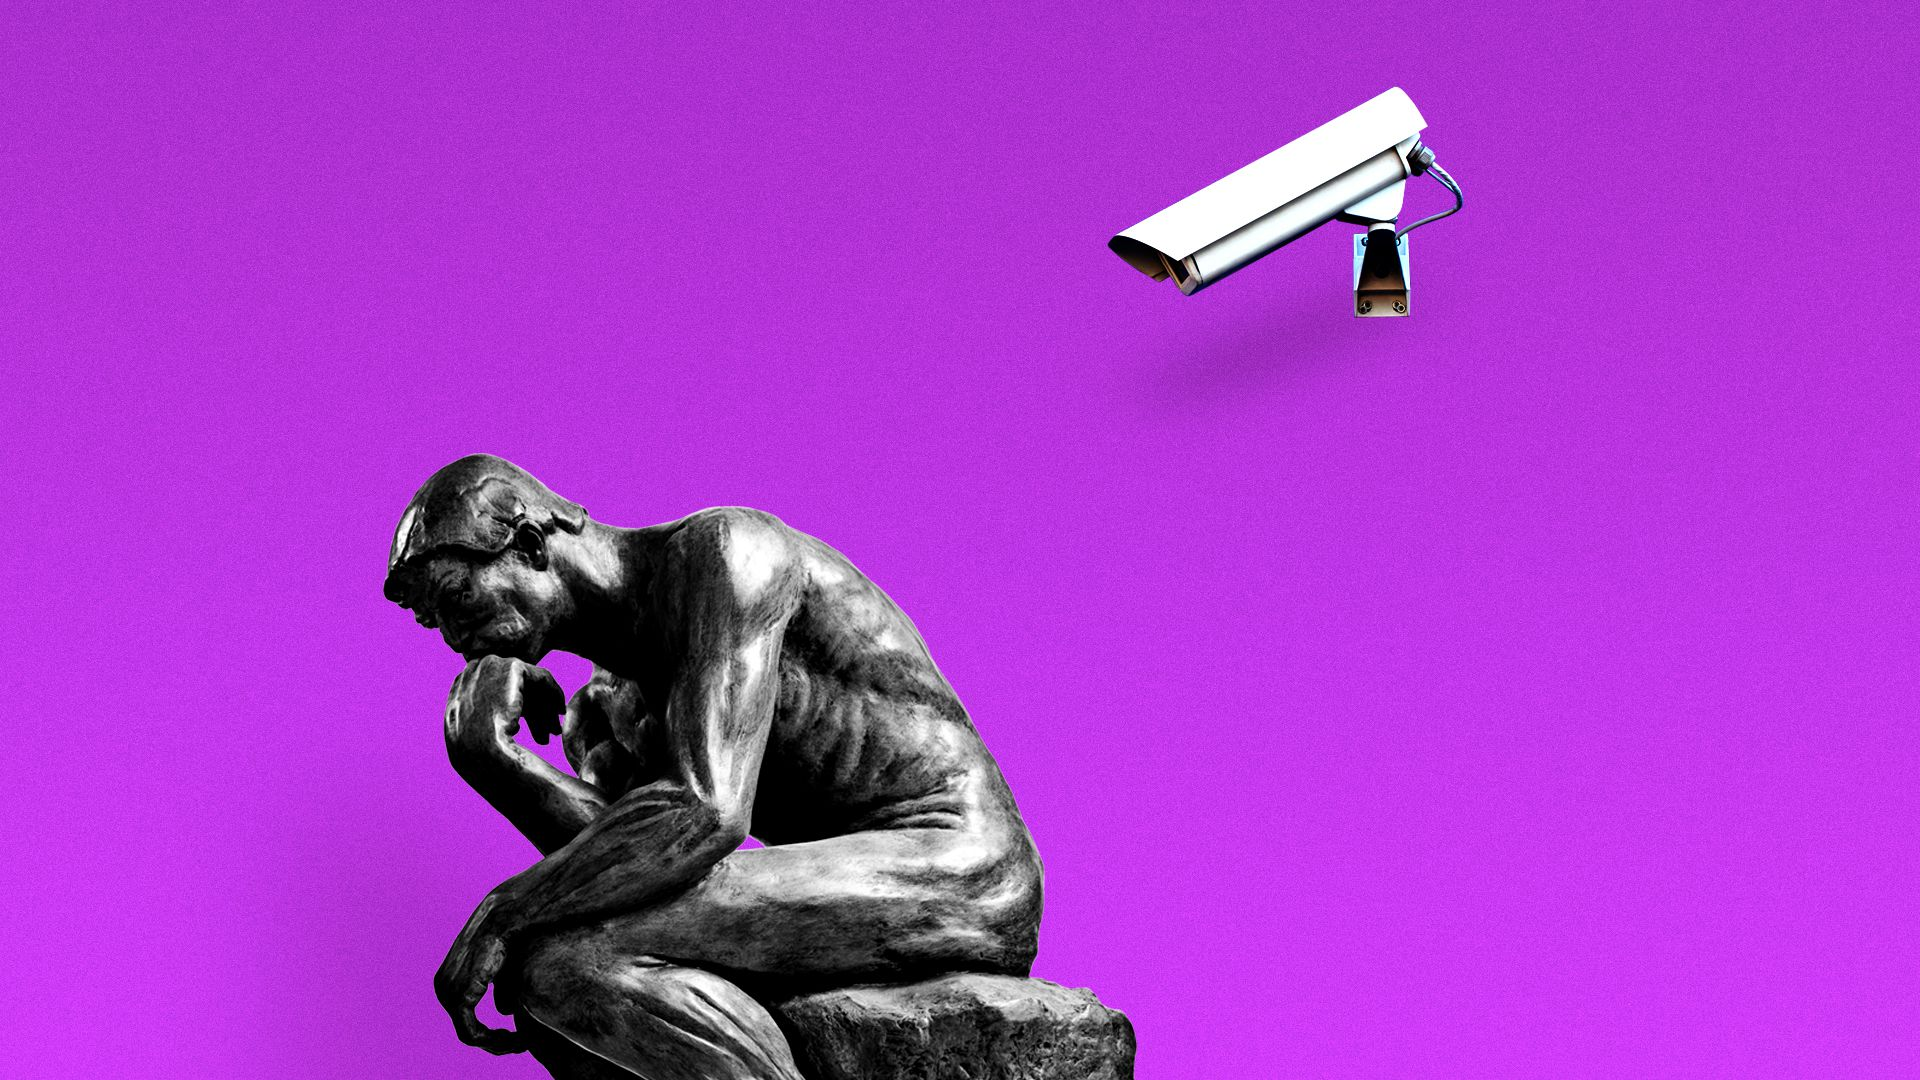 Rodin's 'The Thinker' being watched by CCTV